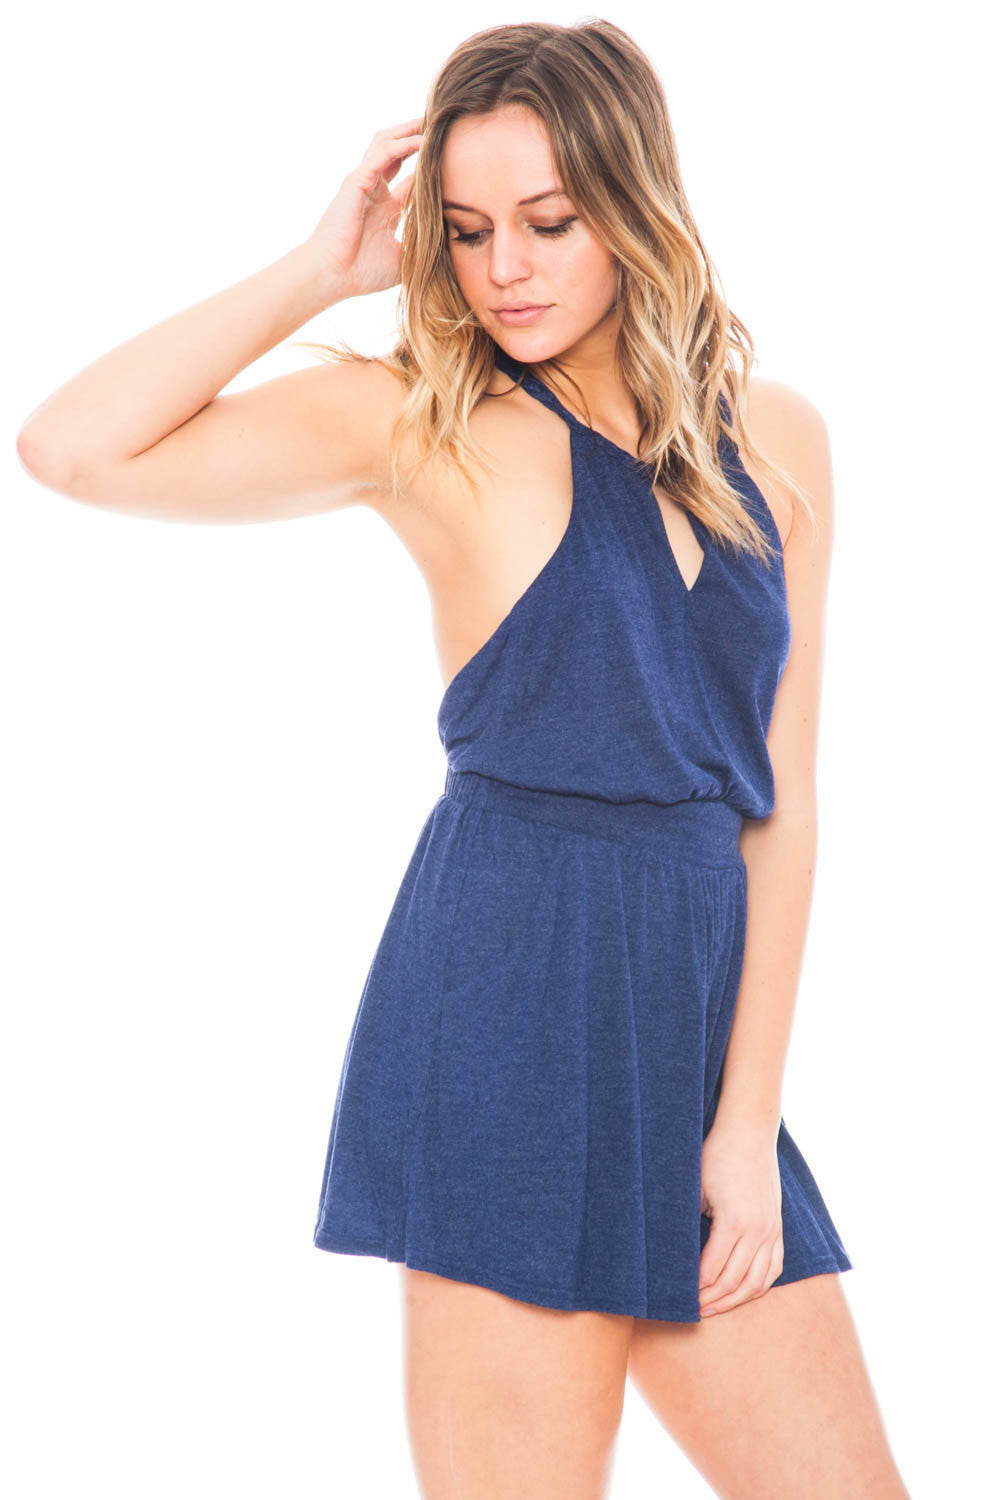 Romper - Keyhole Front Romper with Braided Back Detail